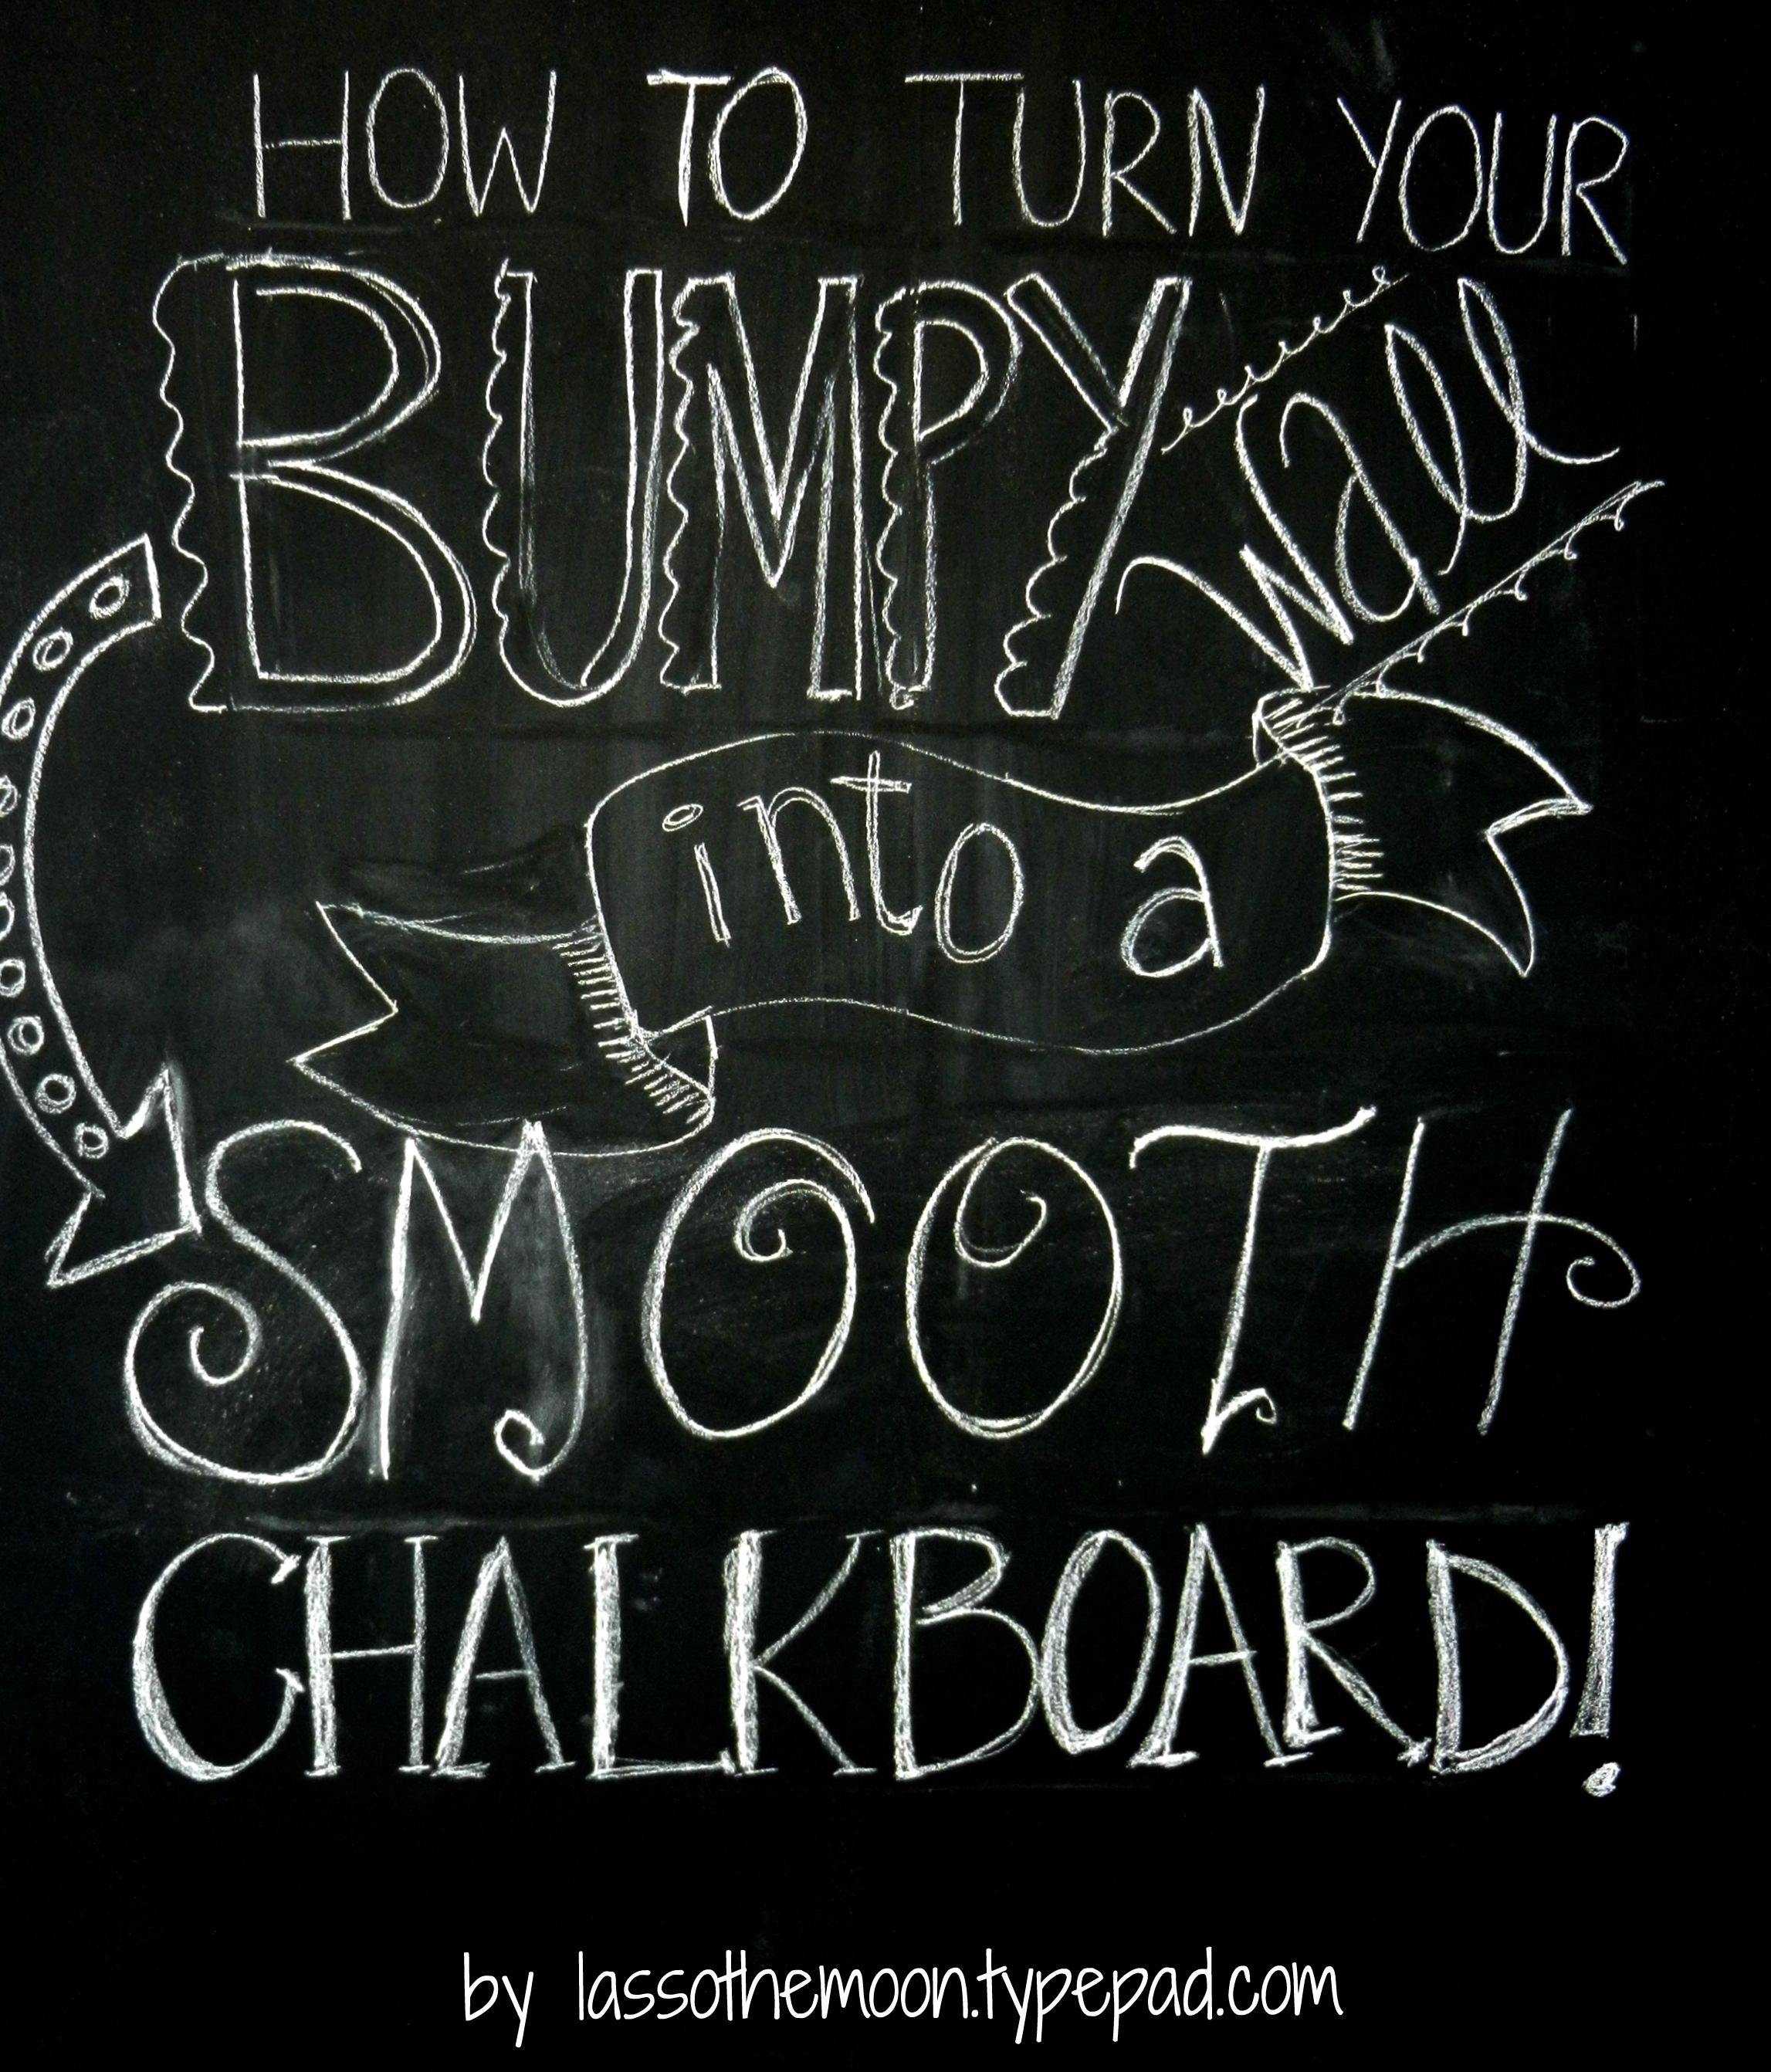 Chalkboard Wall How To Title